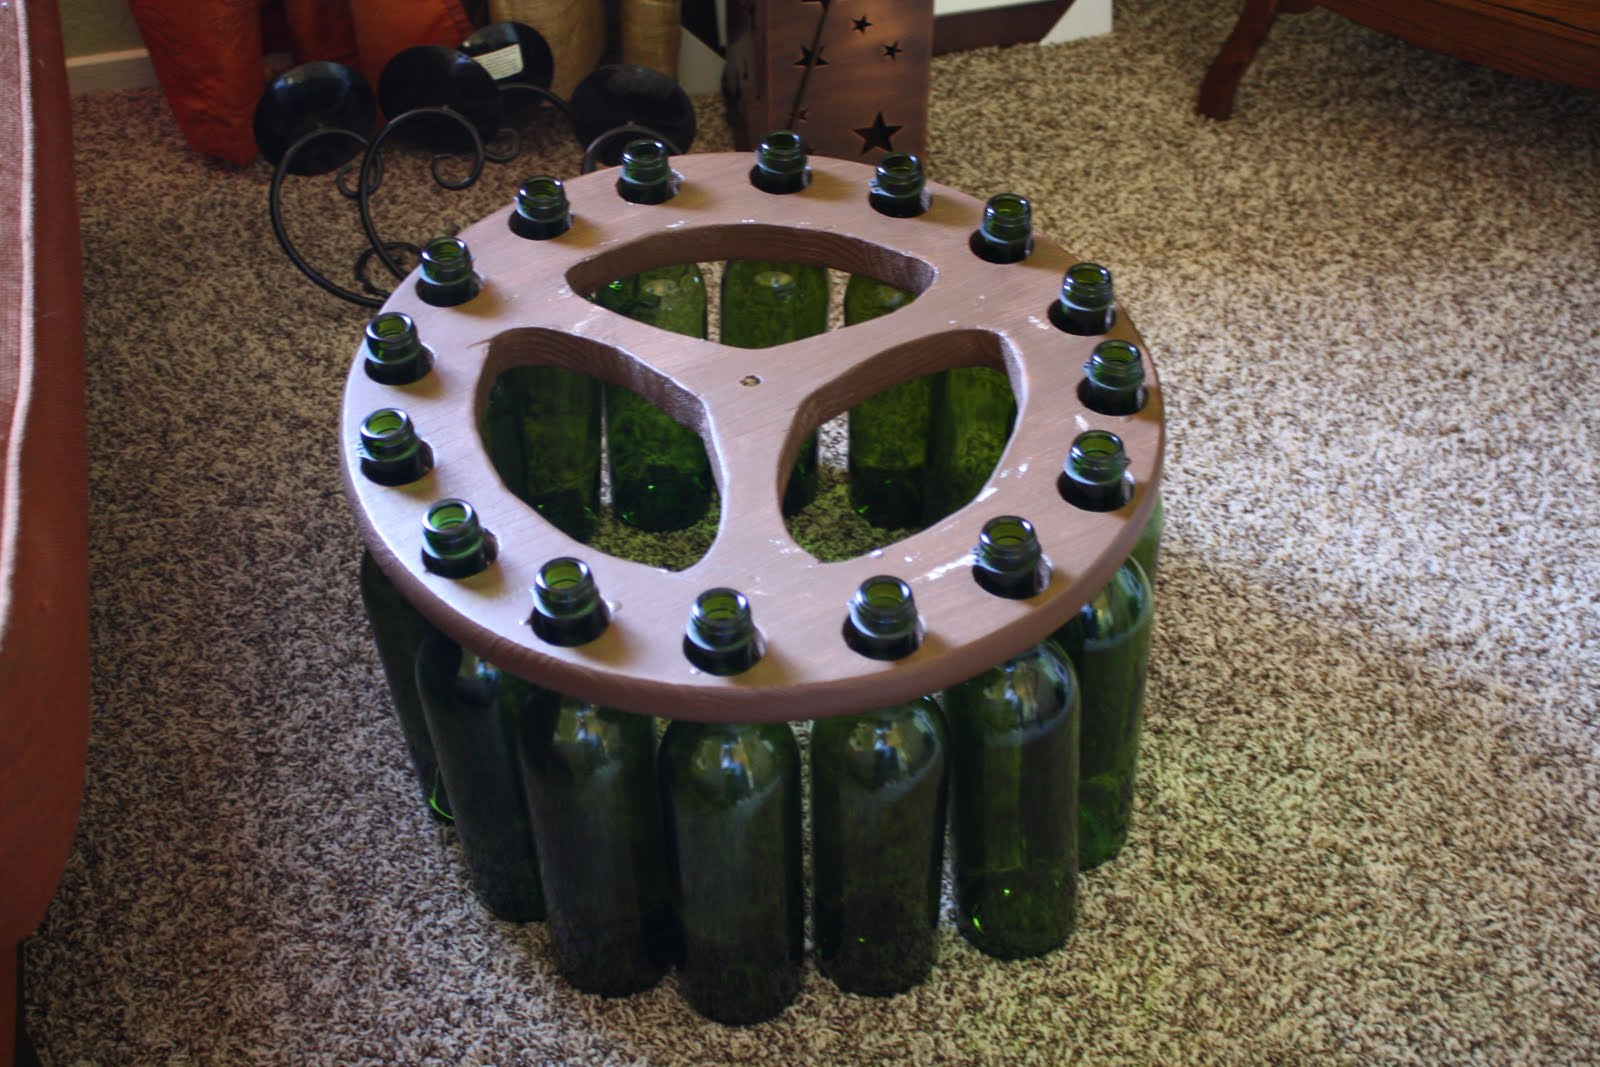 The Medallion And Then Attach Wiring Following Instructions On Light Kit In Your Bulb Tada Very Own Wine Bottle Chandelier